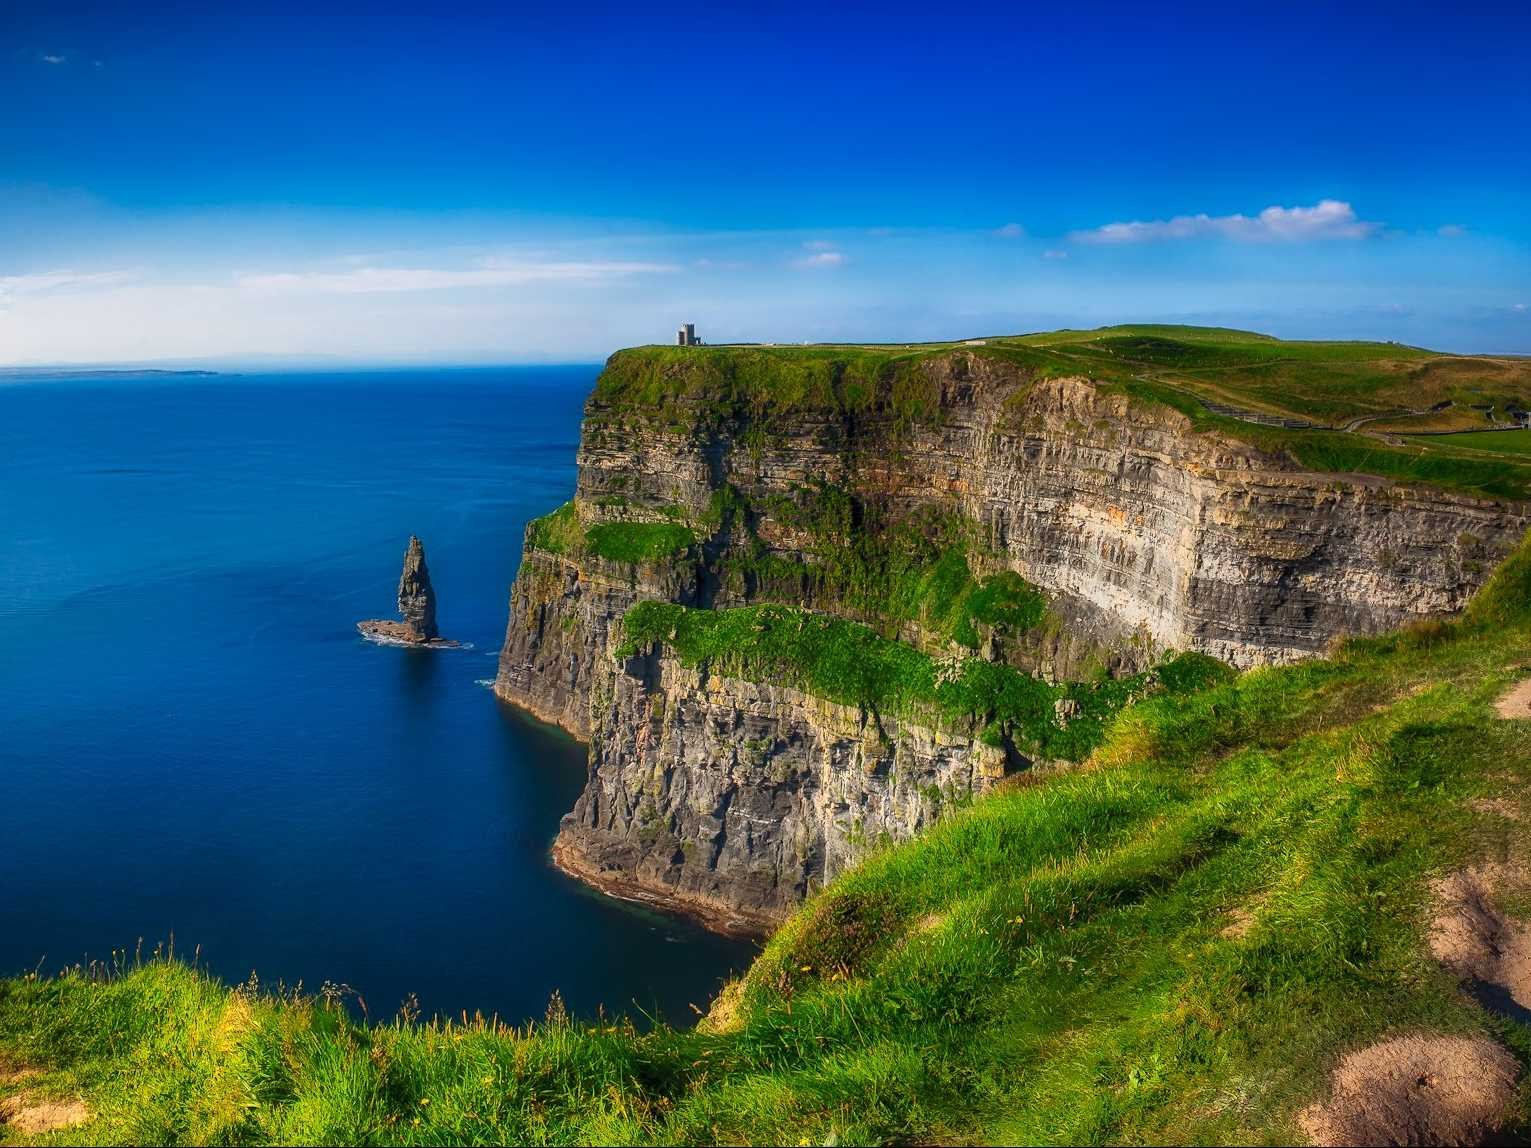 Test your limits and peer out from the edge of the Cliffs of Moher in Ireland.